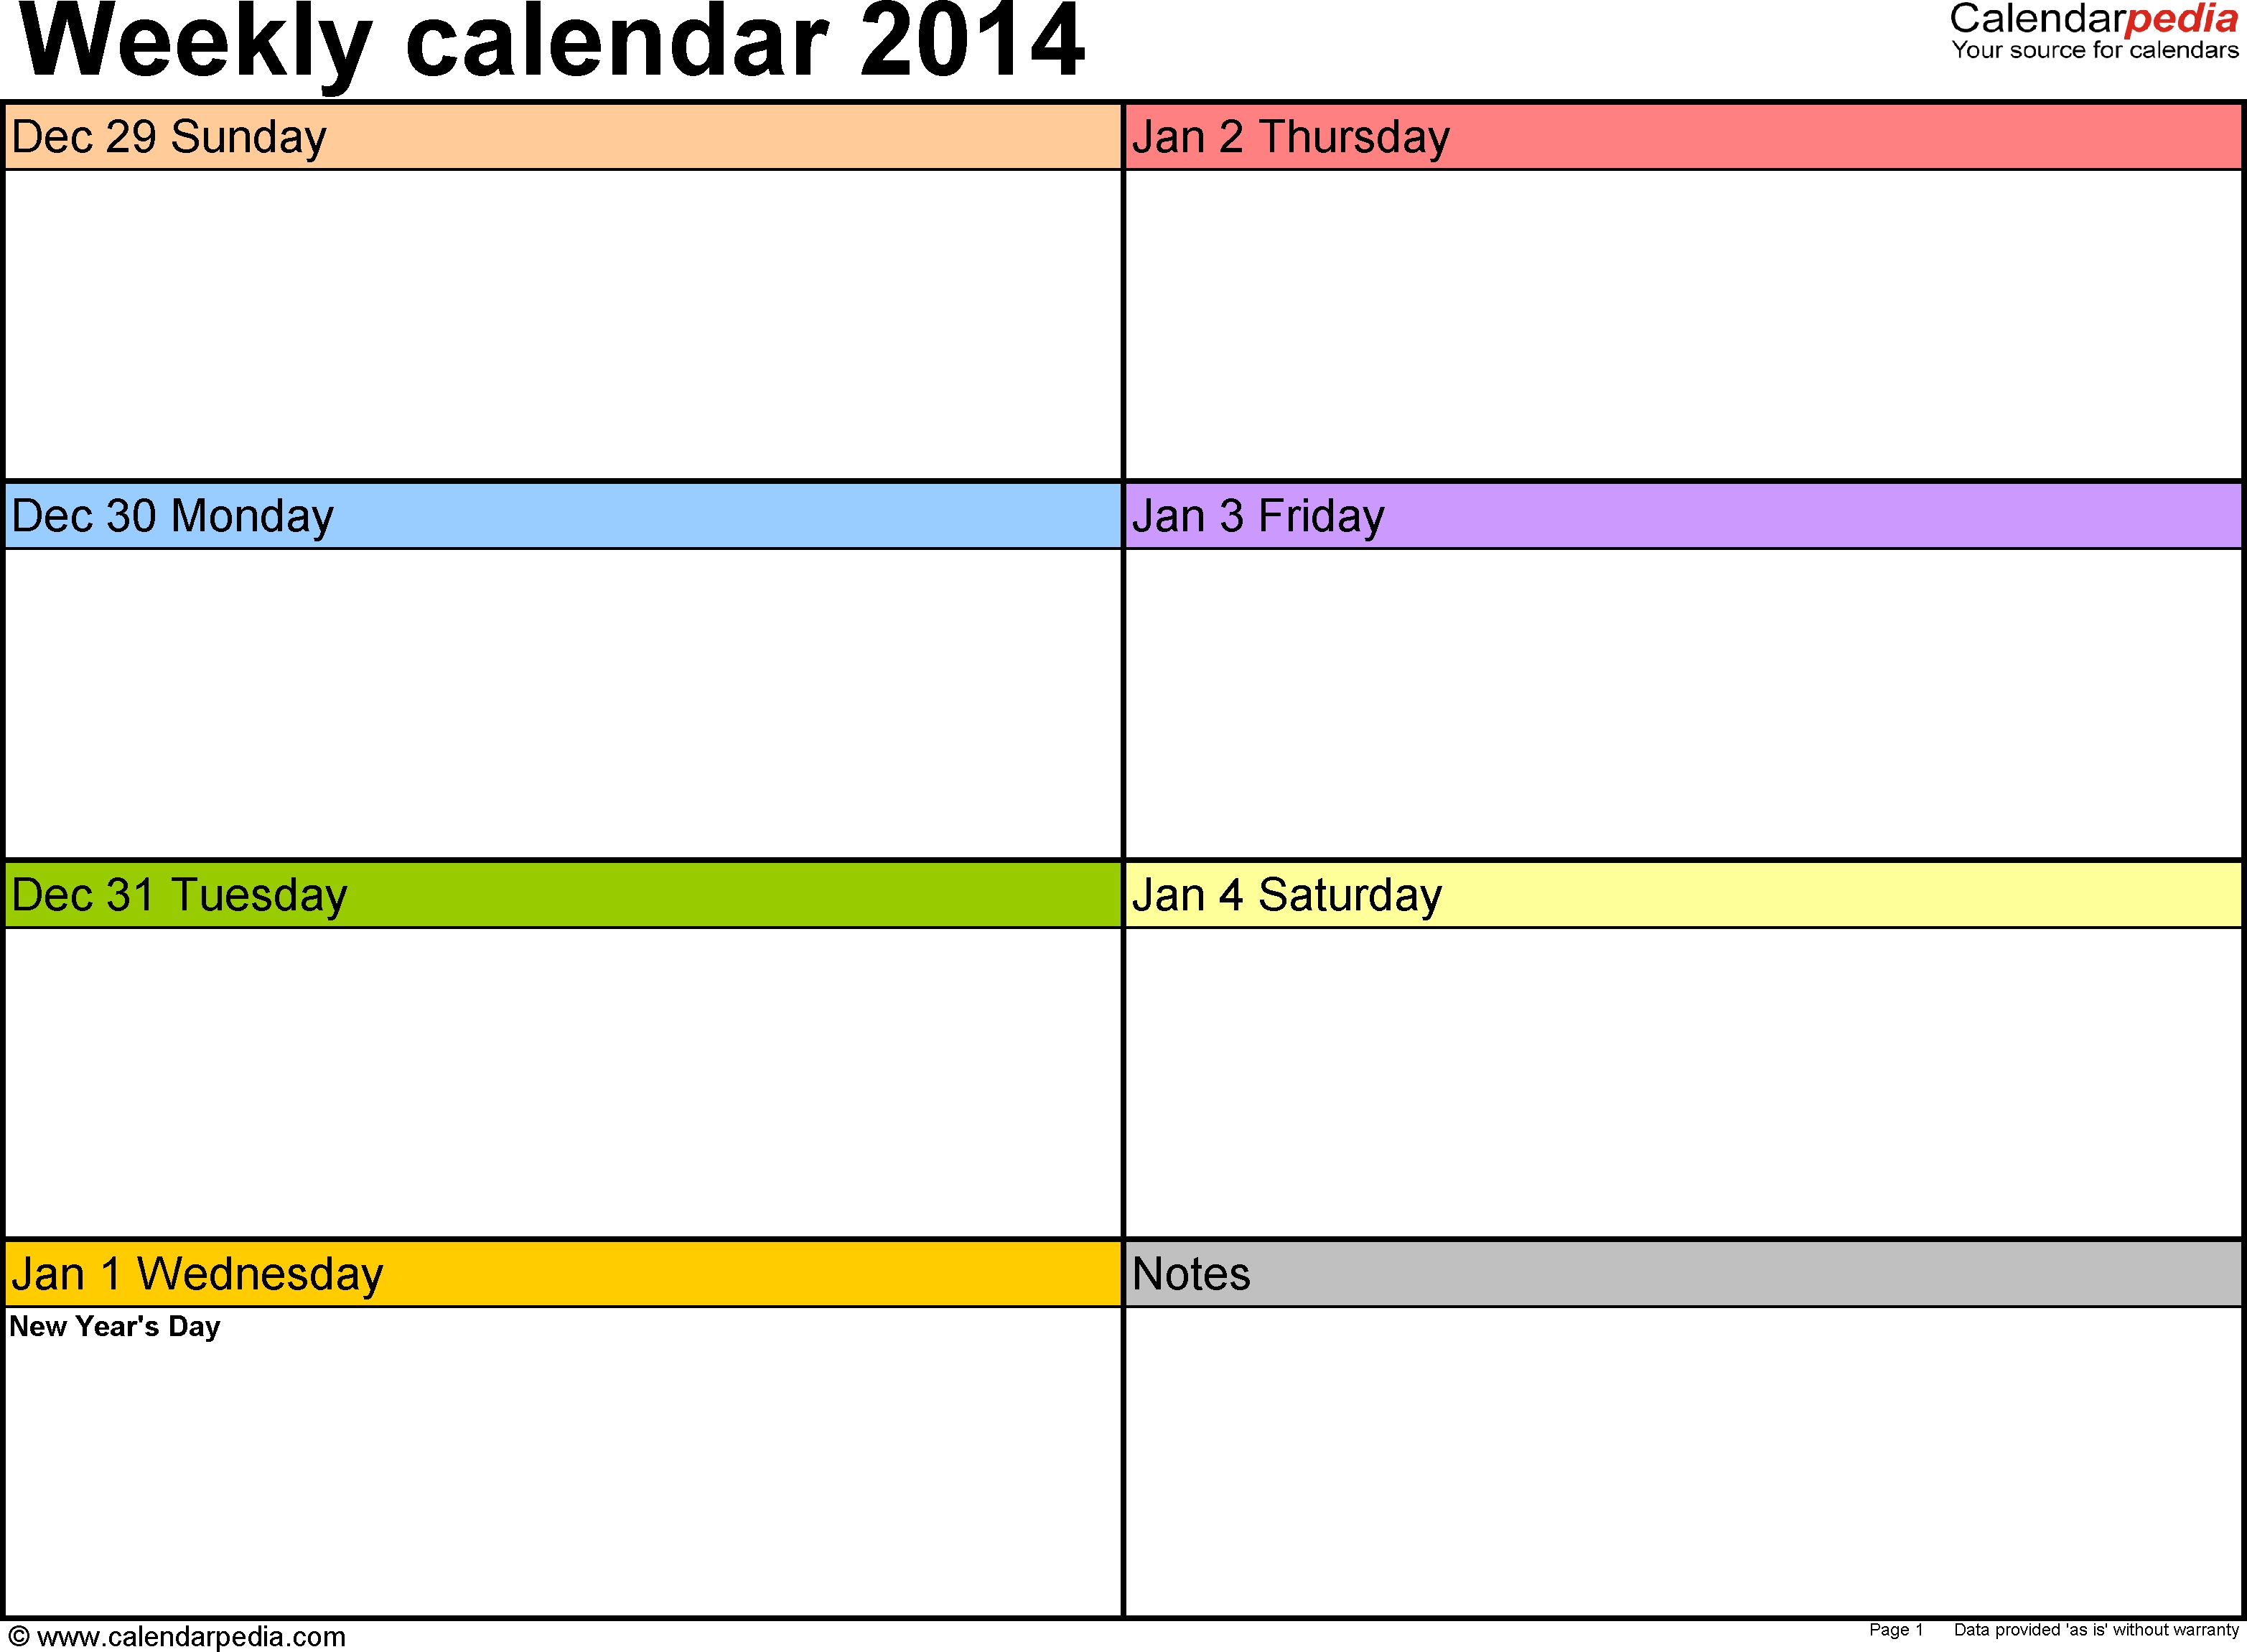 Weekly Calendar 2014 For Word - 4 Free Printable Templates within 7 Days A Week Planner